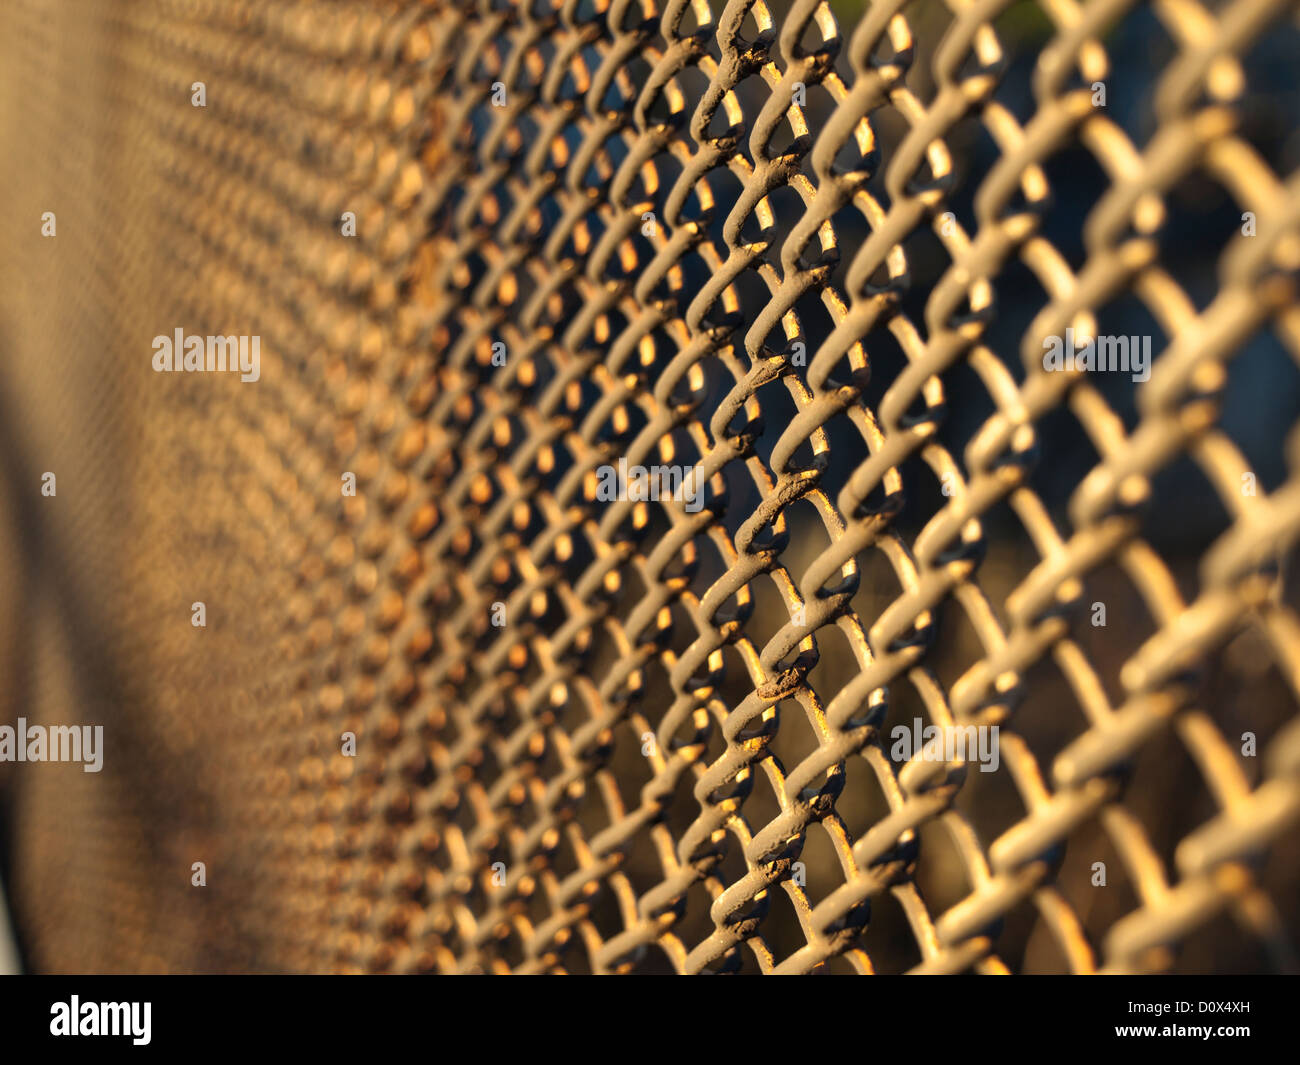 Fine meshed wire rusty wire fence, selective focus close up - Stock Image